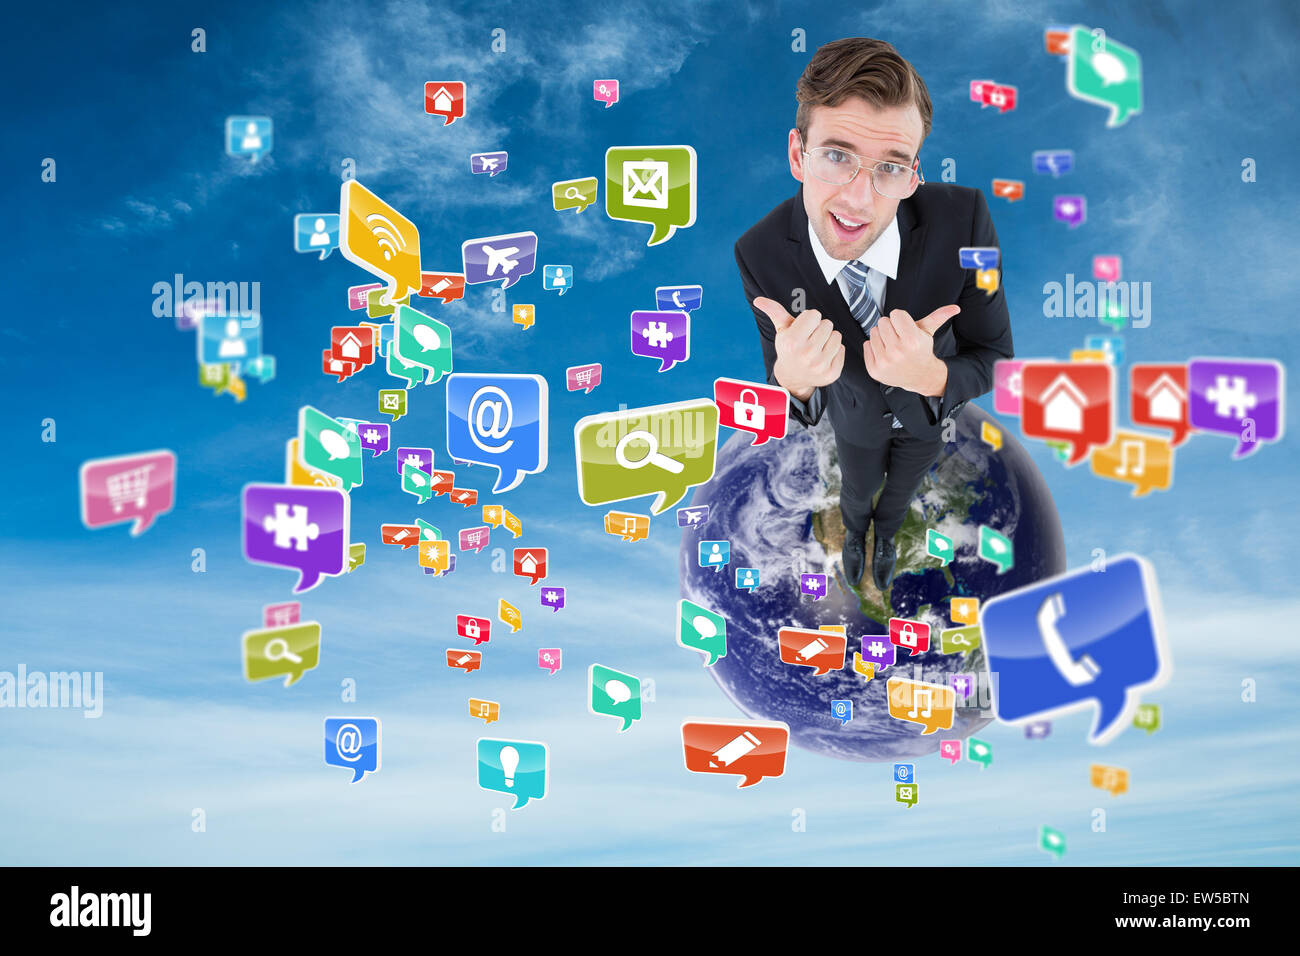 Composite image of geeky businessman with thumbs up - Stock Image